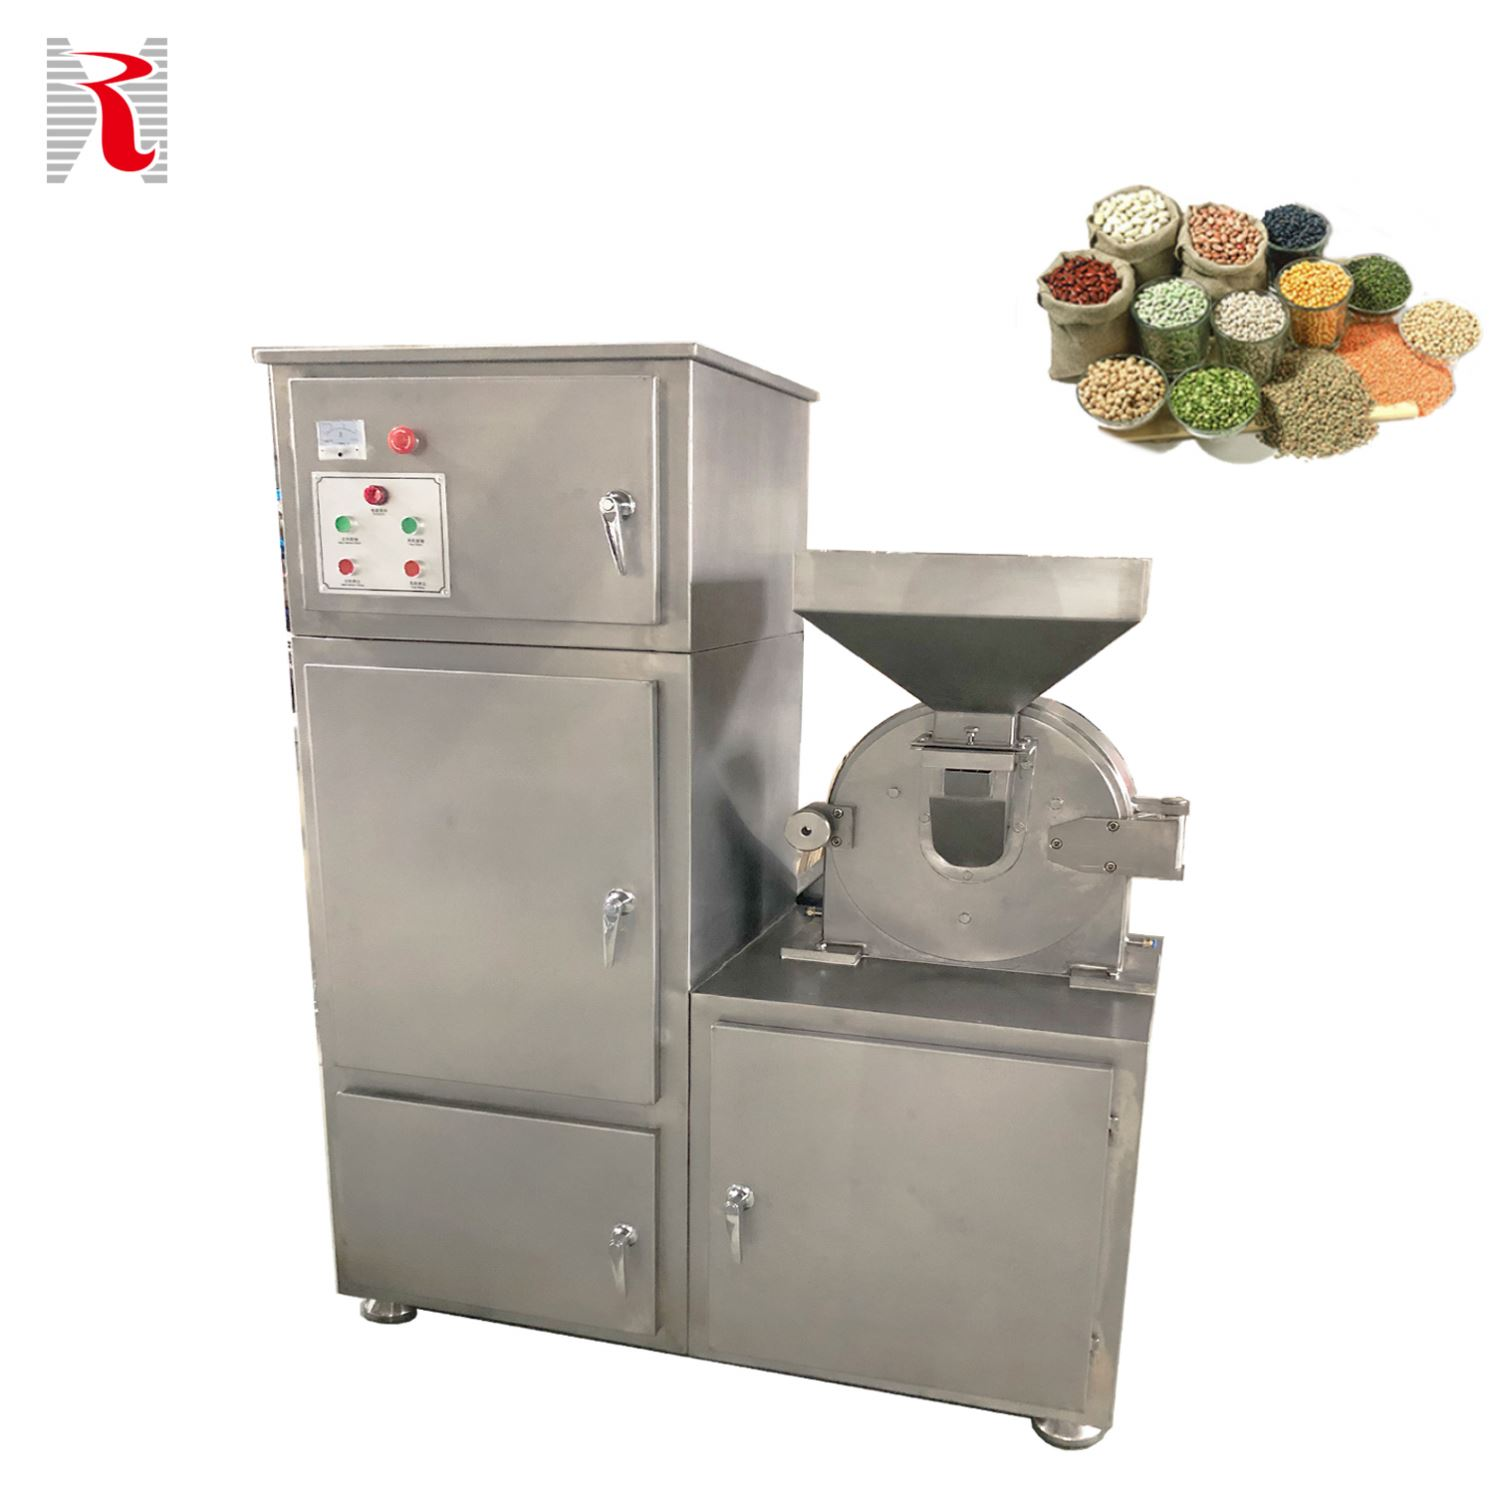 SF-30B Automatic Made In China SF Series Herb Medicine Powder Universal Pulverizer Price